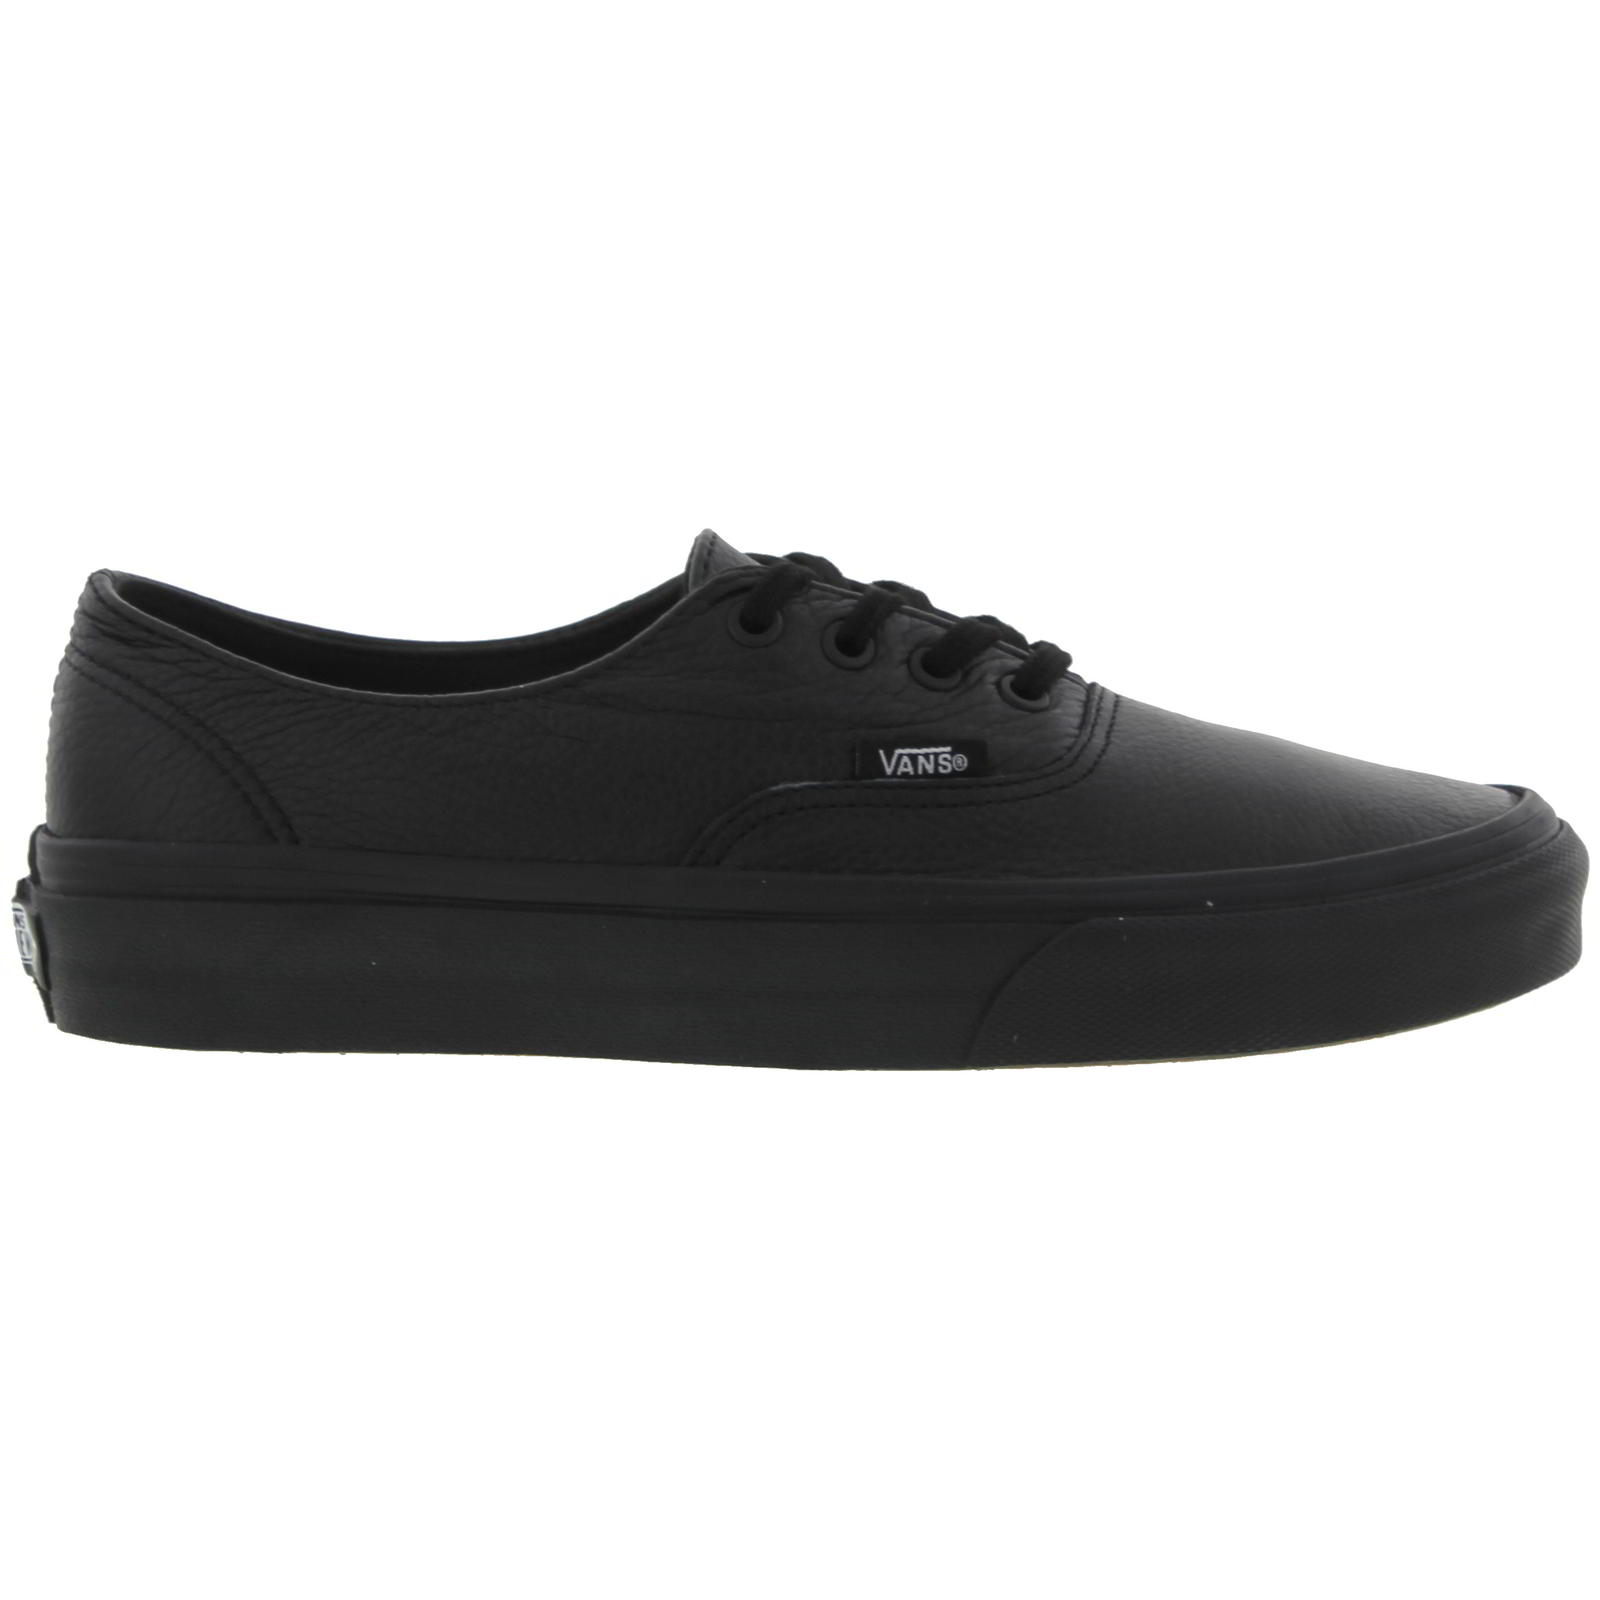 4b10662219f0b0 Details about Vans Authentic Mens Womens All Black Leather Lace Up Trainers  Shoes Size 7.5-12